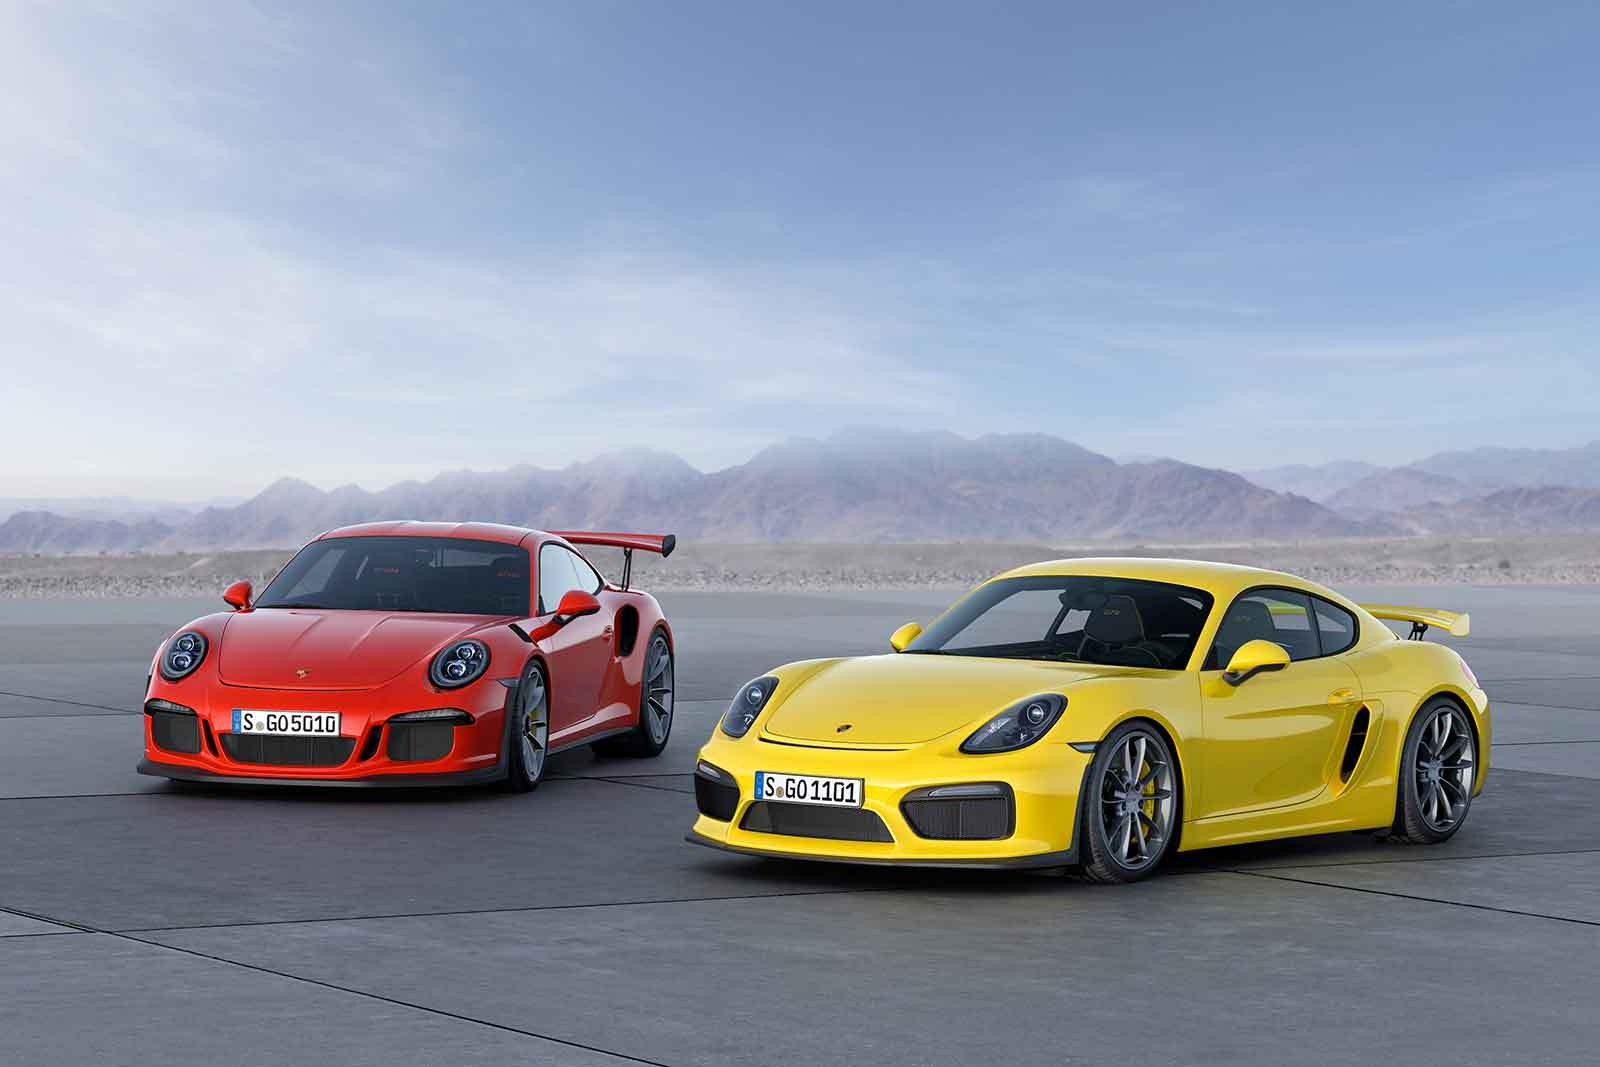 The new Porsche Cayman GT4 and the 911 GT3 RS